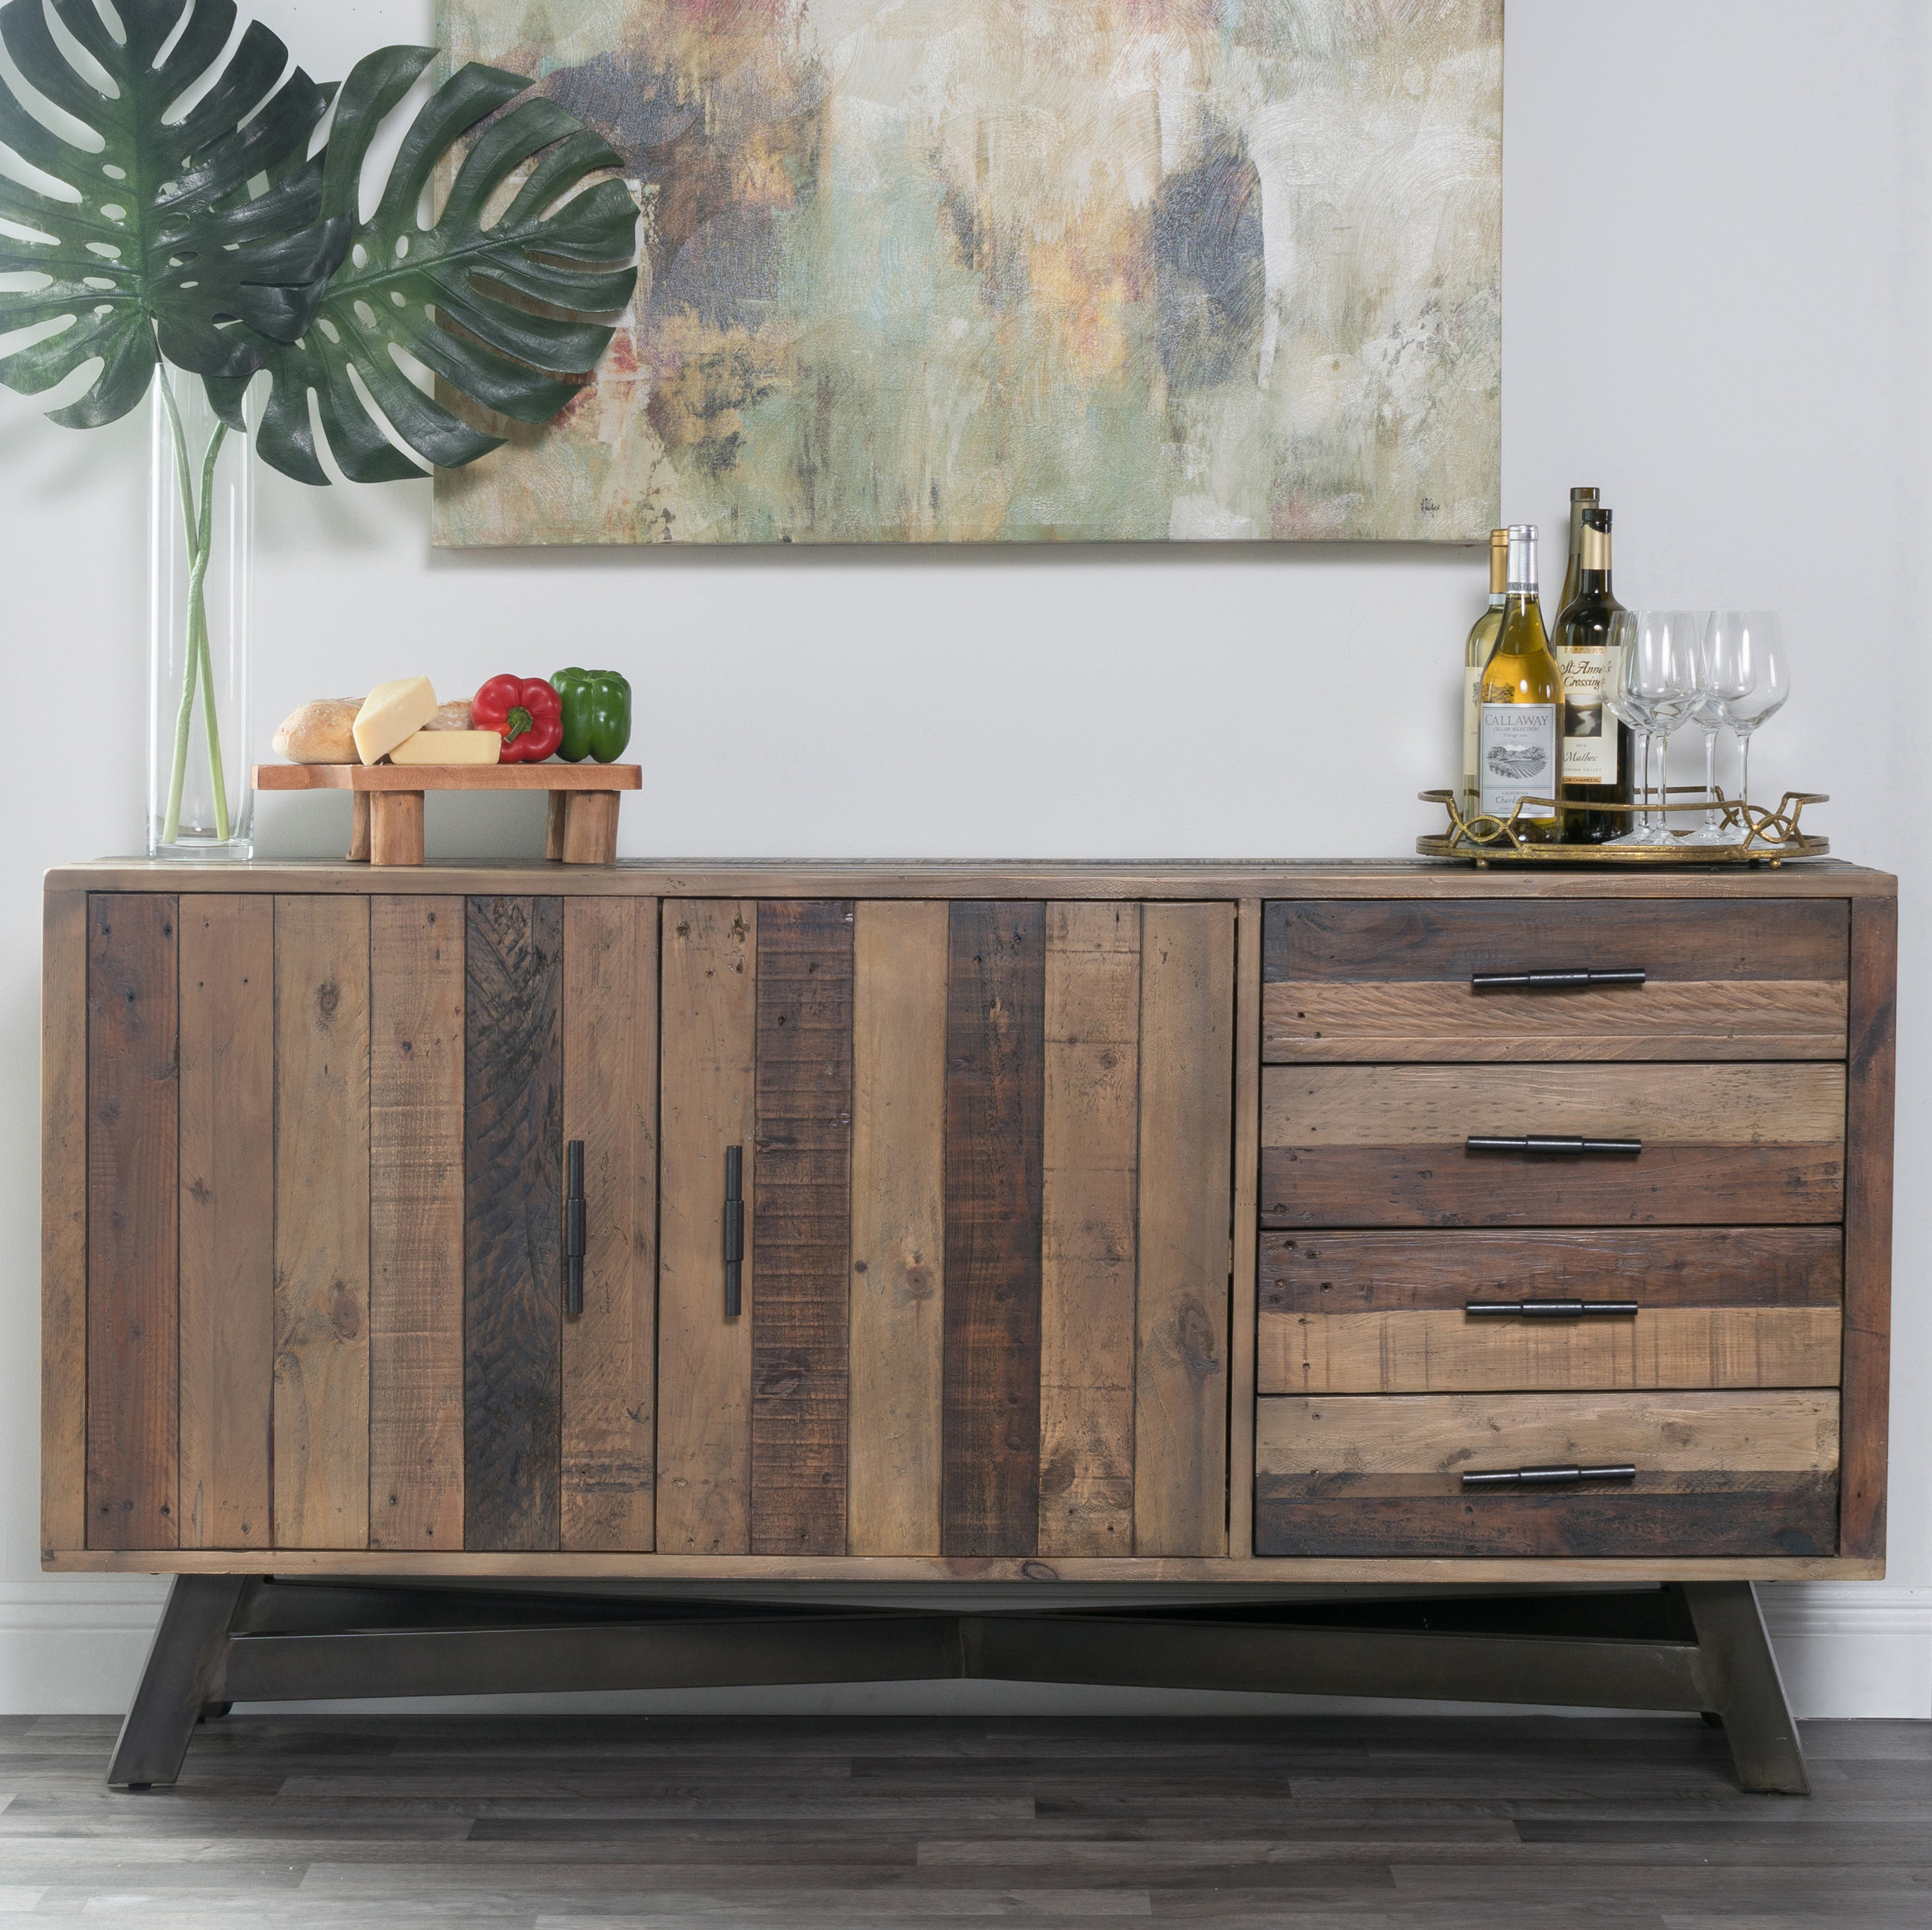 Farmhouse & Rustic Buffet Table Sideboards & Buffets | Birch Within Simple Living Southport Dining Buffets (View 9 of 30)